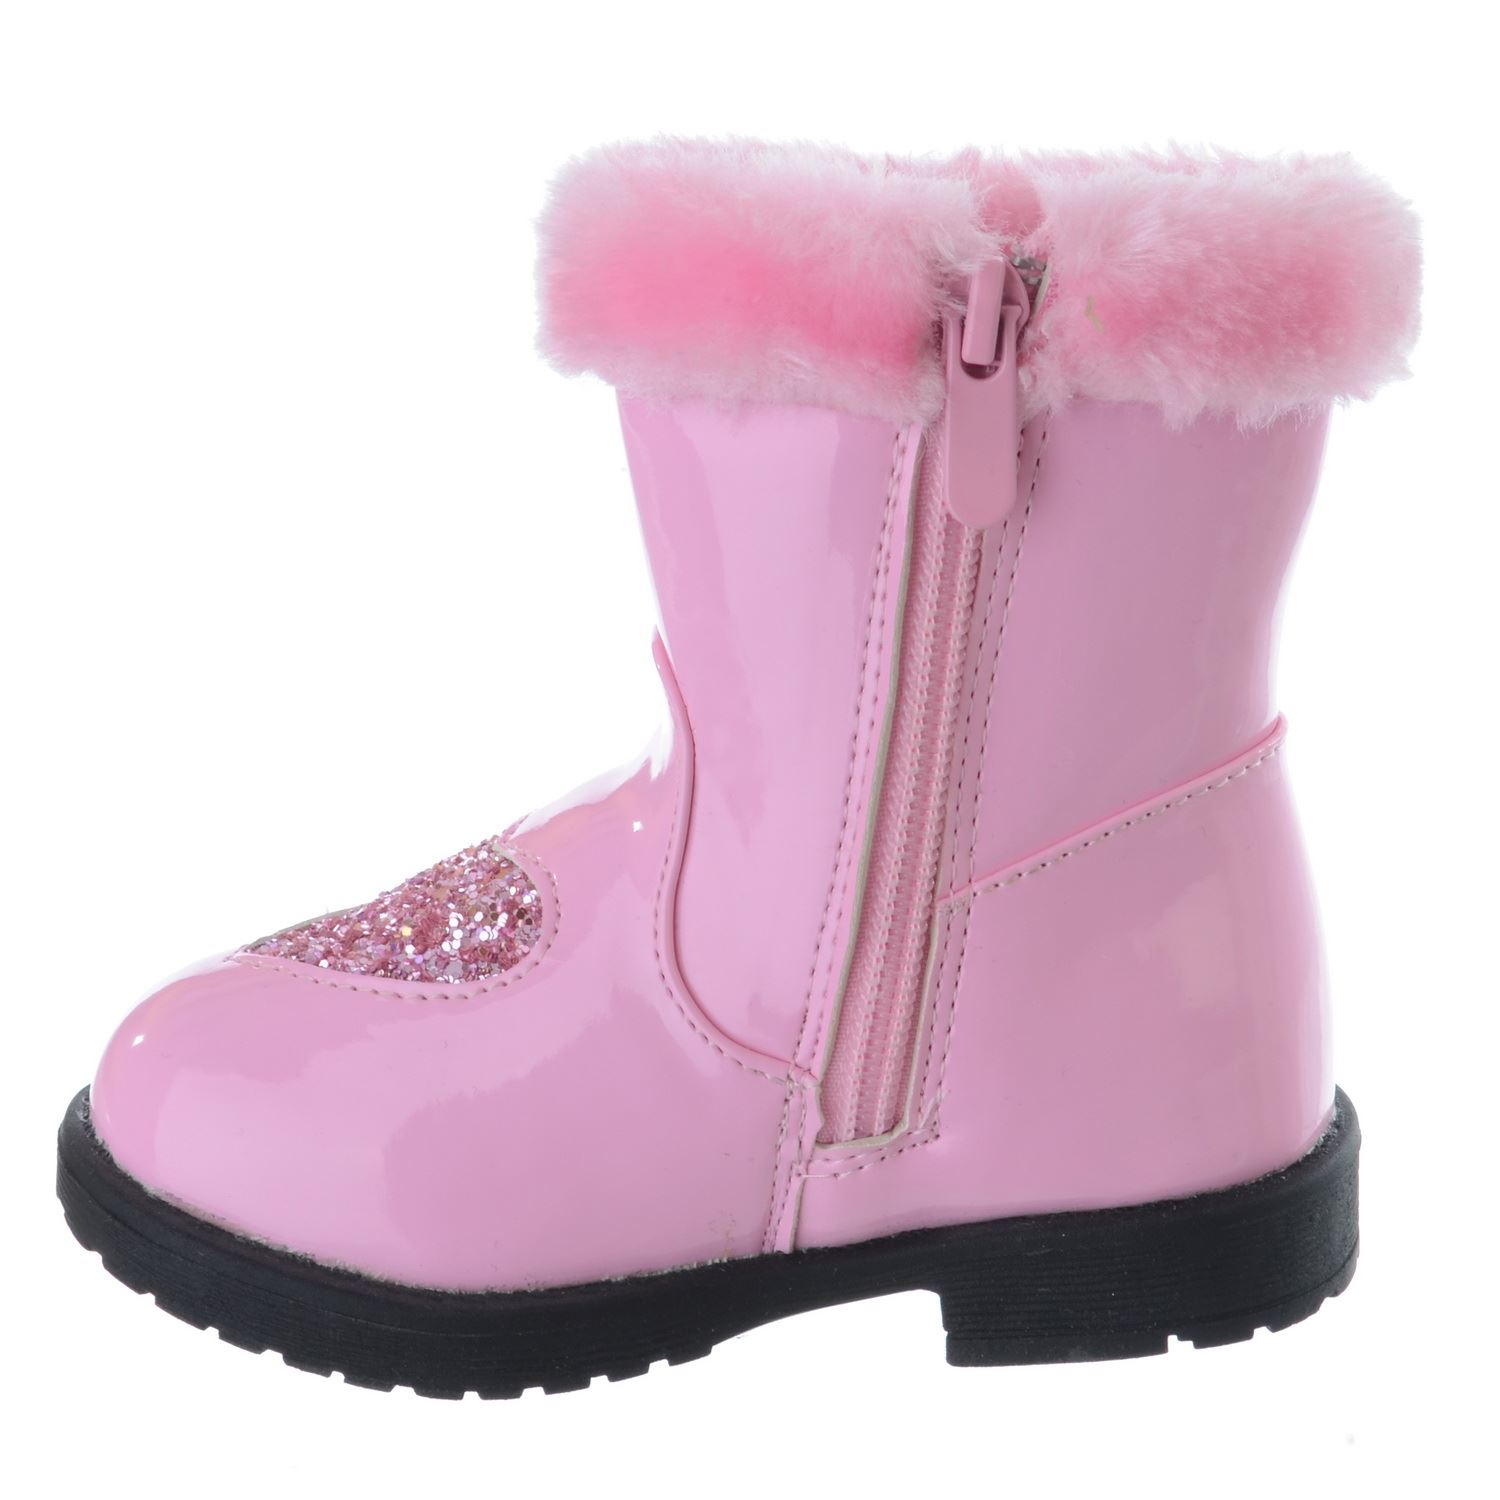 INFANTS TODDLER GIRLS GLITTER HEART WARM FUR LINED ZIP UP ANKLE BOOTS SHOES SIZE